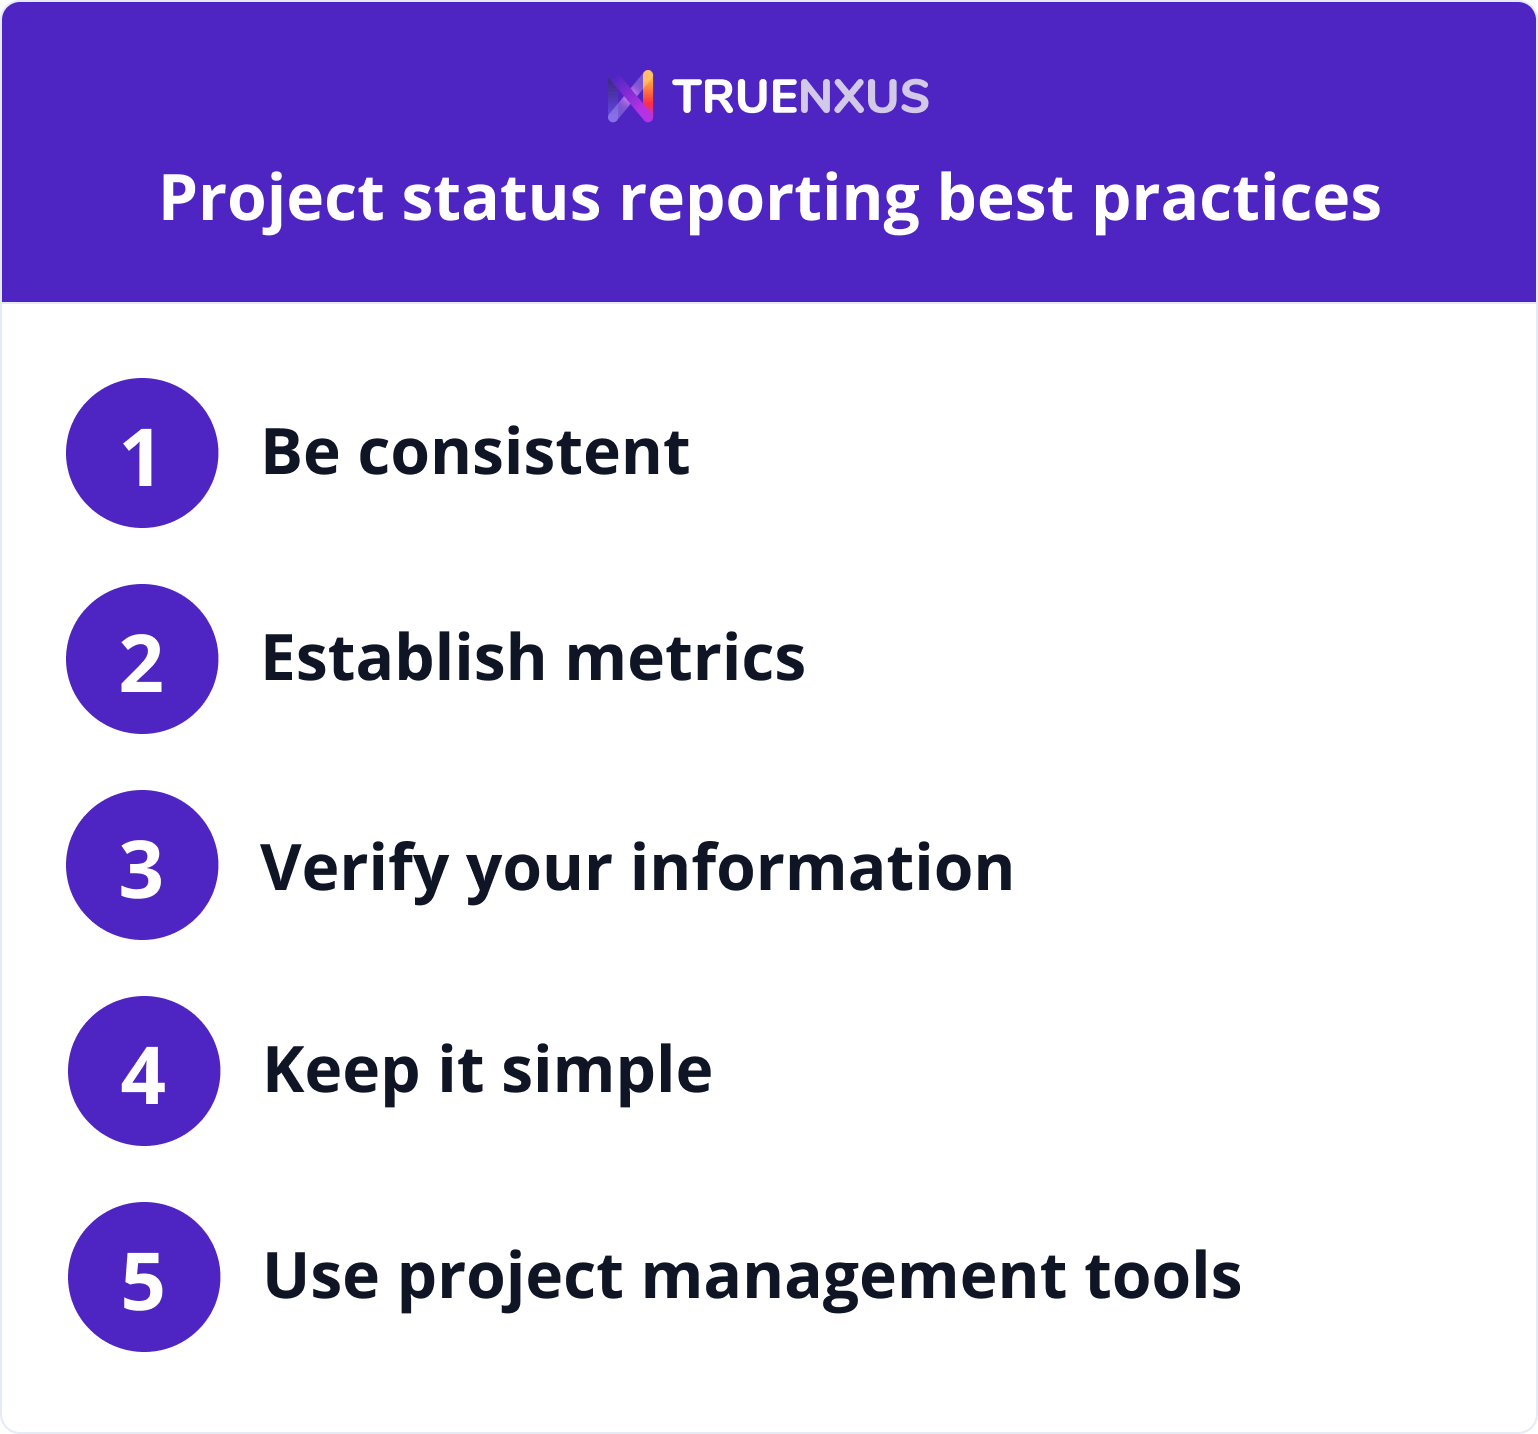 Project status reporting best practices infographic